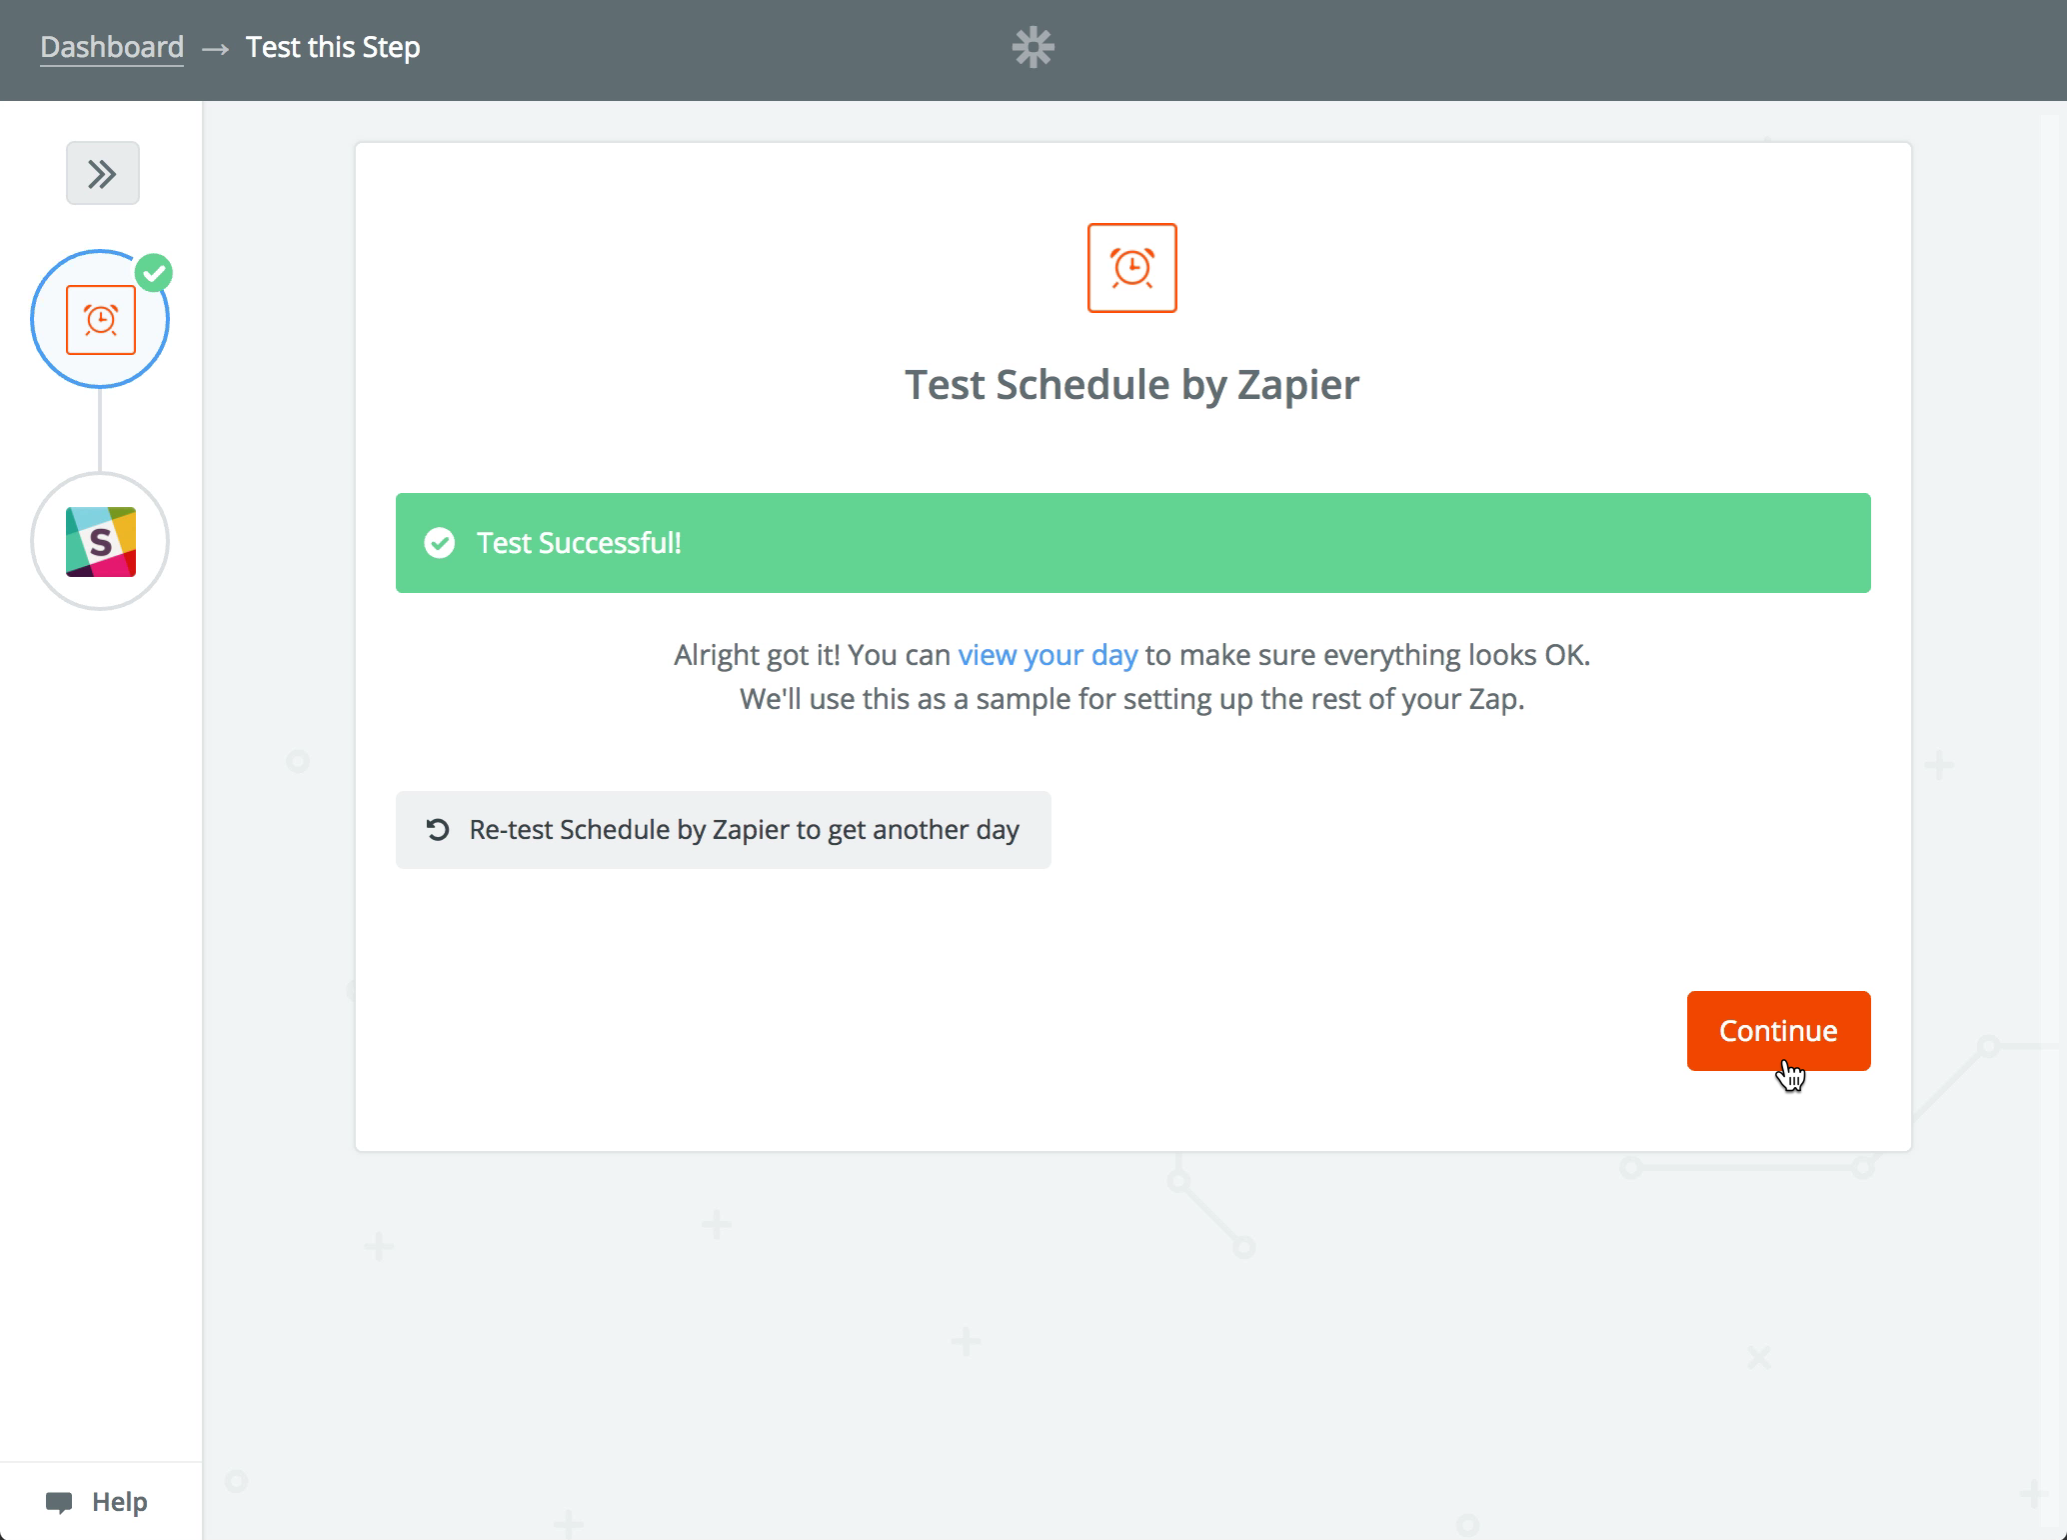 Test the 'Schedule by Zapier' step